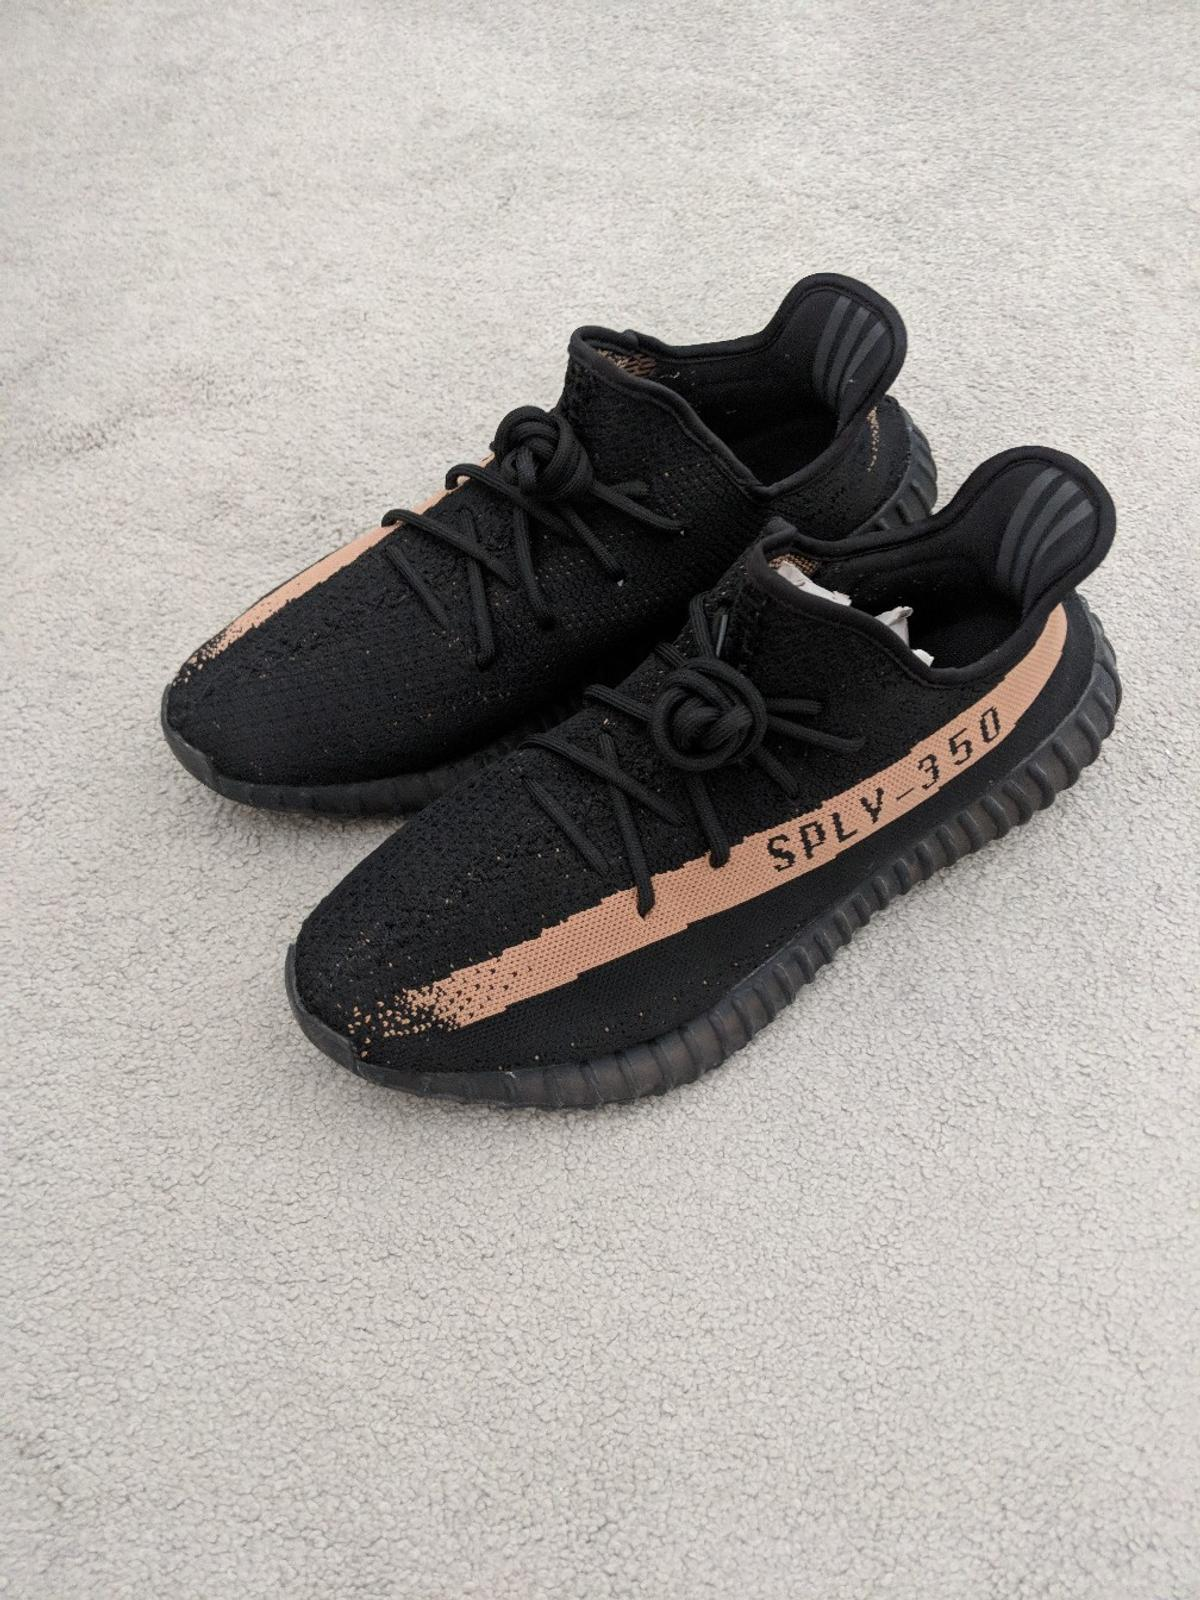 info for 10d61 b0574 Adidas Yeezy Boost 350 Copper 11 UK